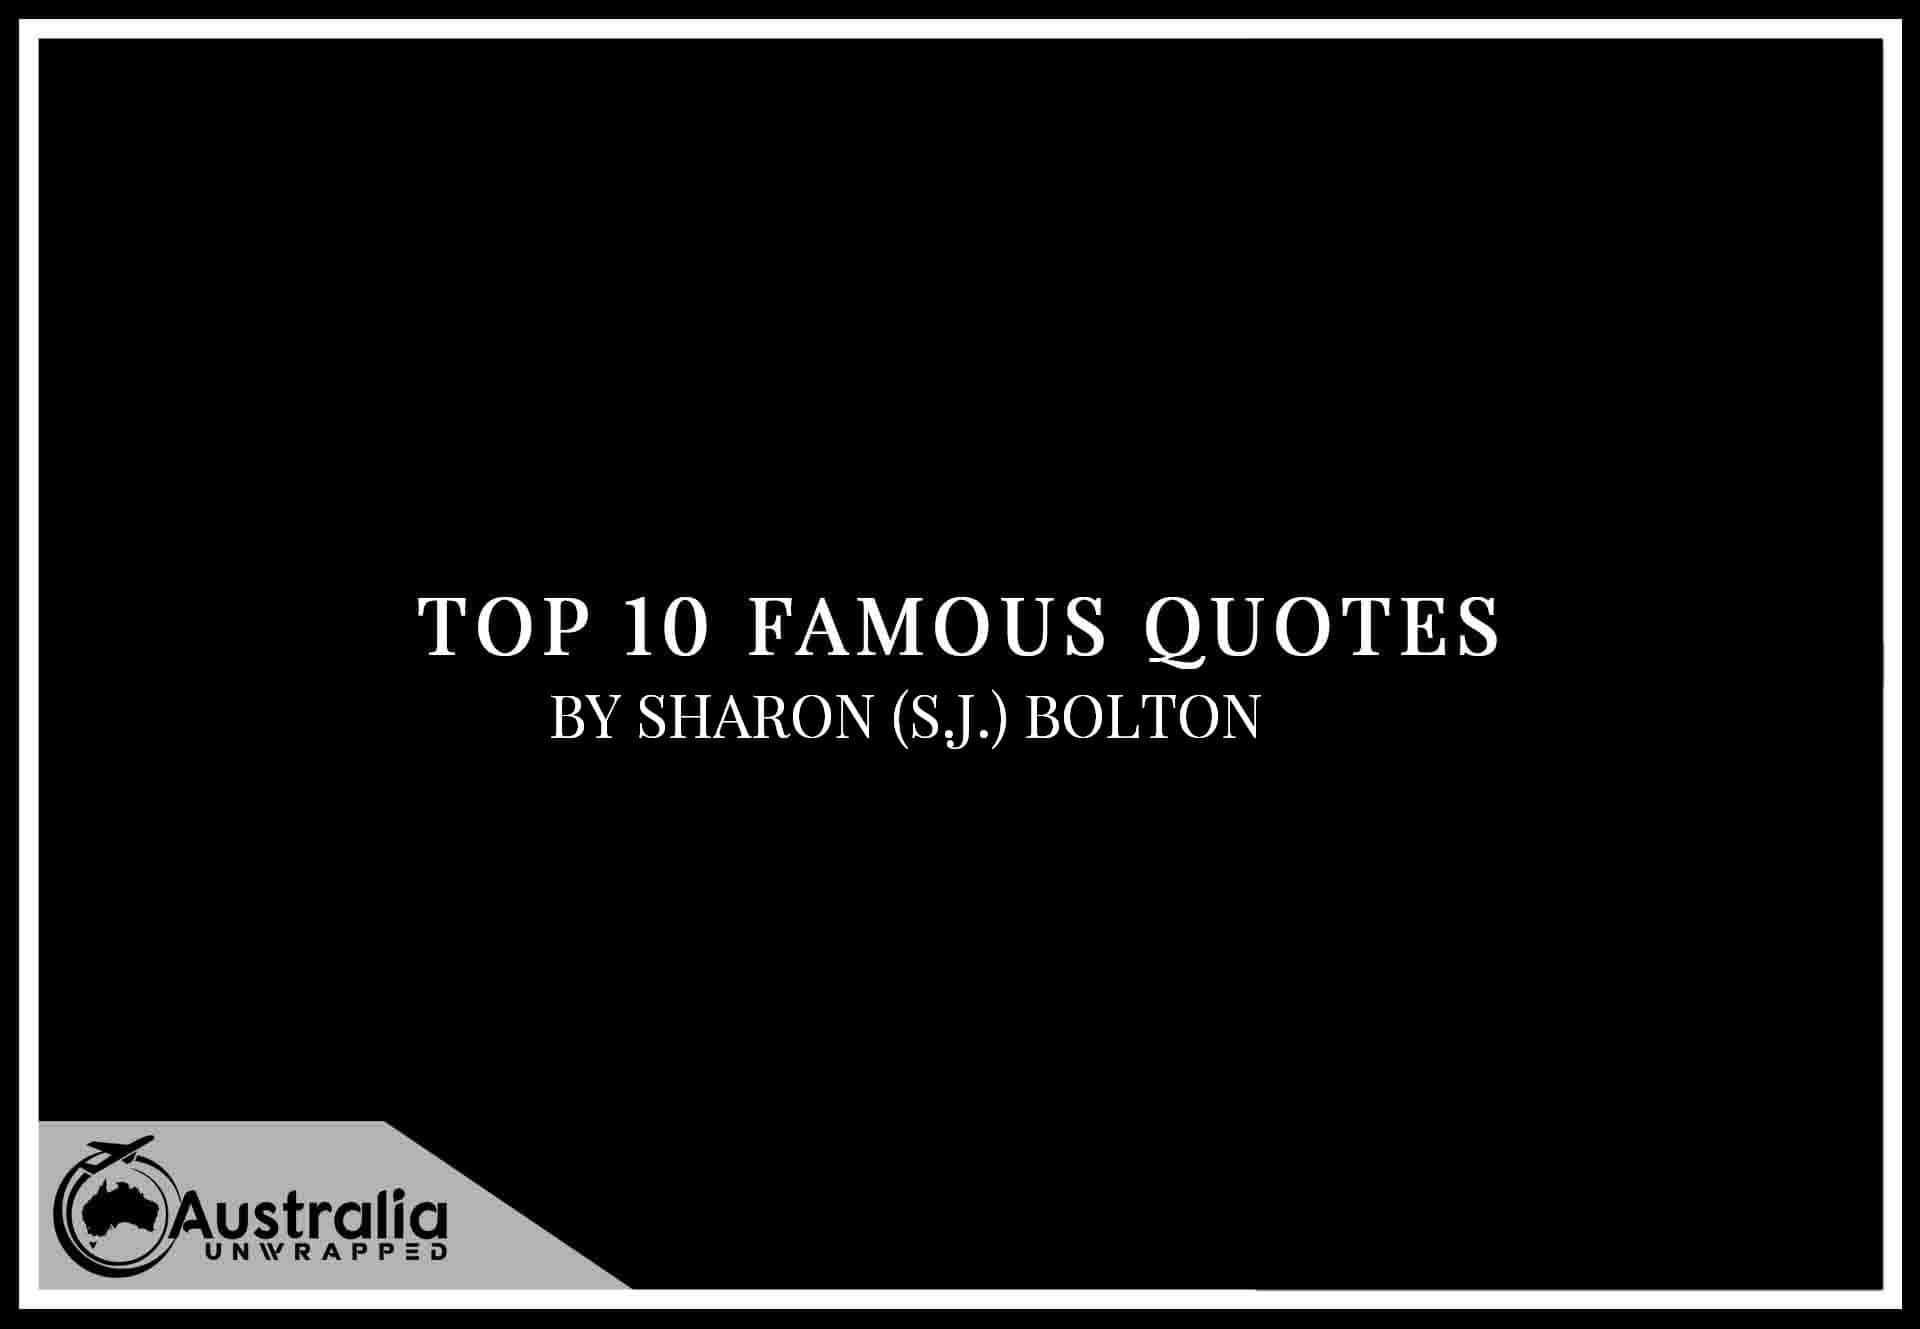 Top 10 Famous Quotes by Author Sharon Bolton